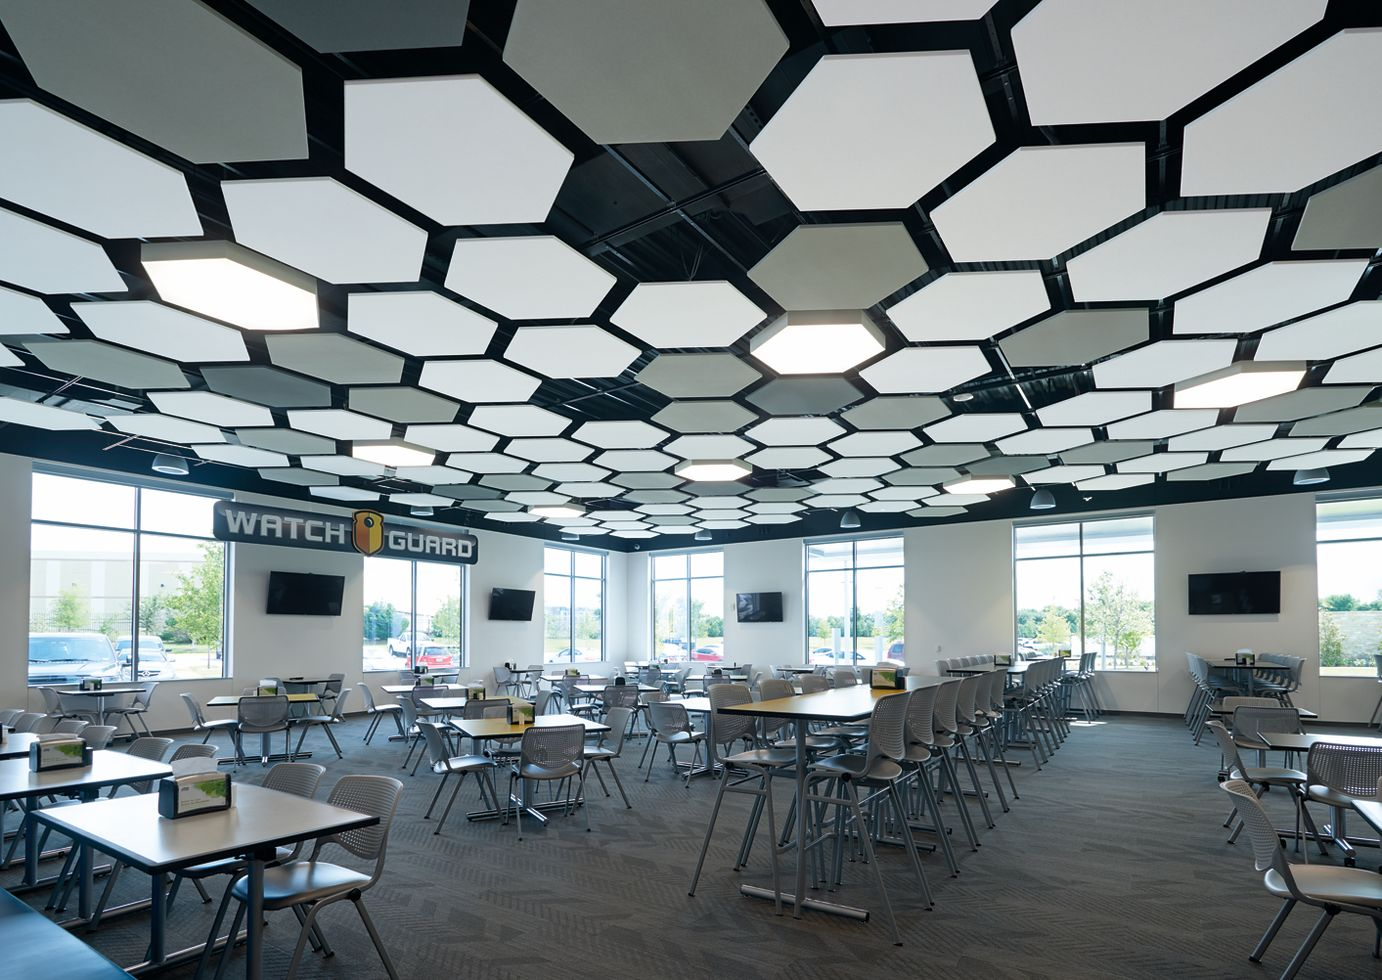 SOUNDSCAPES Shapes Hexagons / METALWORKS Linear Walls